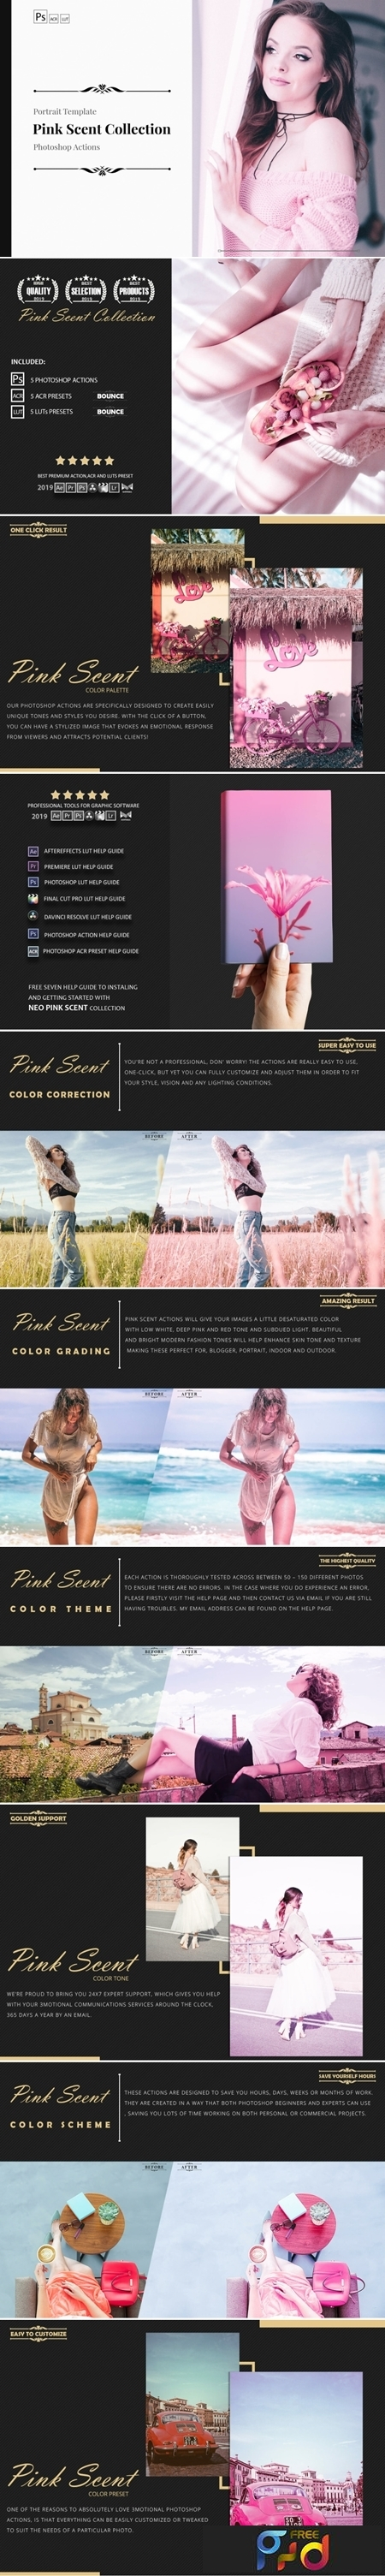 Neo Pink Scent Color Grading photoshop actions 3530870 1